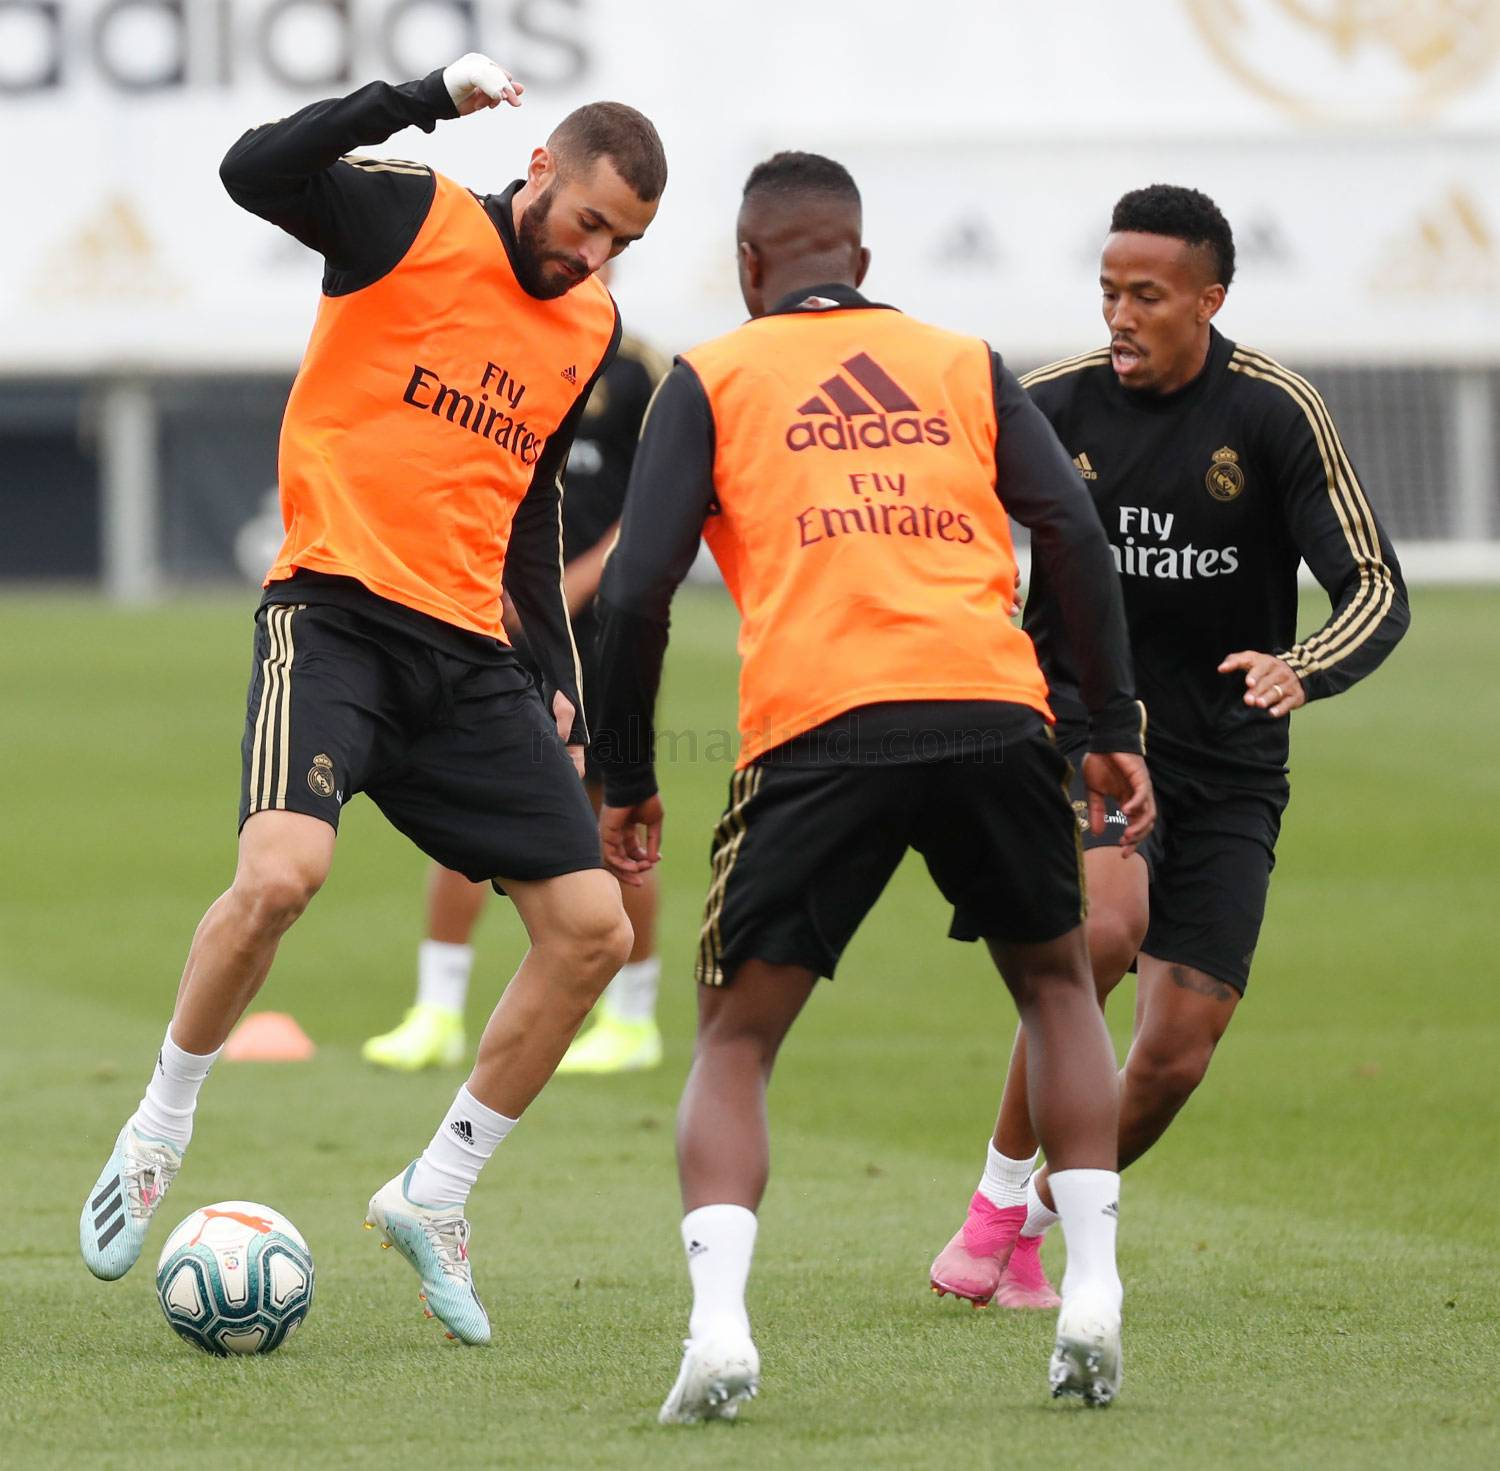 Real Madrid - Entrenamiento del Real Madrid  - 13-09-2019